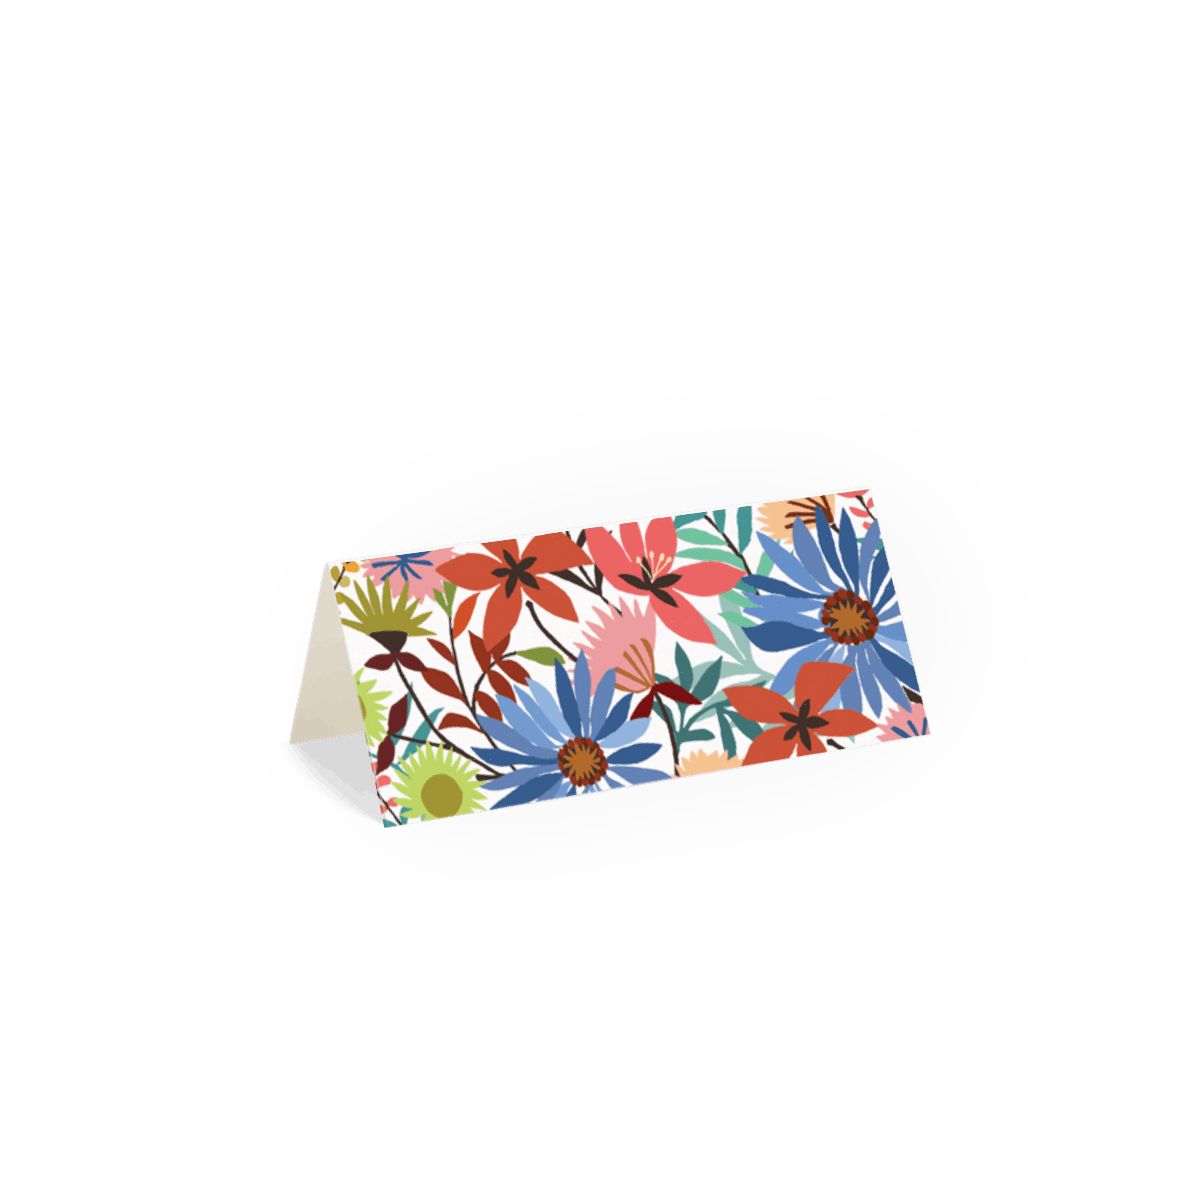 Https%3a%2f%2fwww.papier.com%2fproduct image%2f15859%2f15%2fmeadow flowers 4191 back 1484152945.png?ixlib=rb 1.1